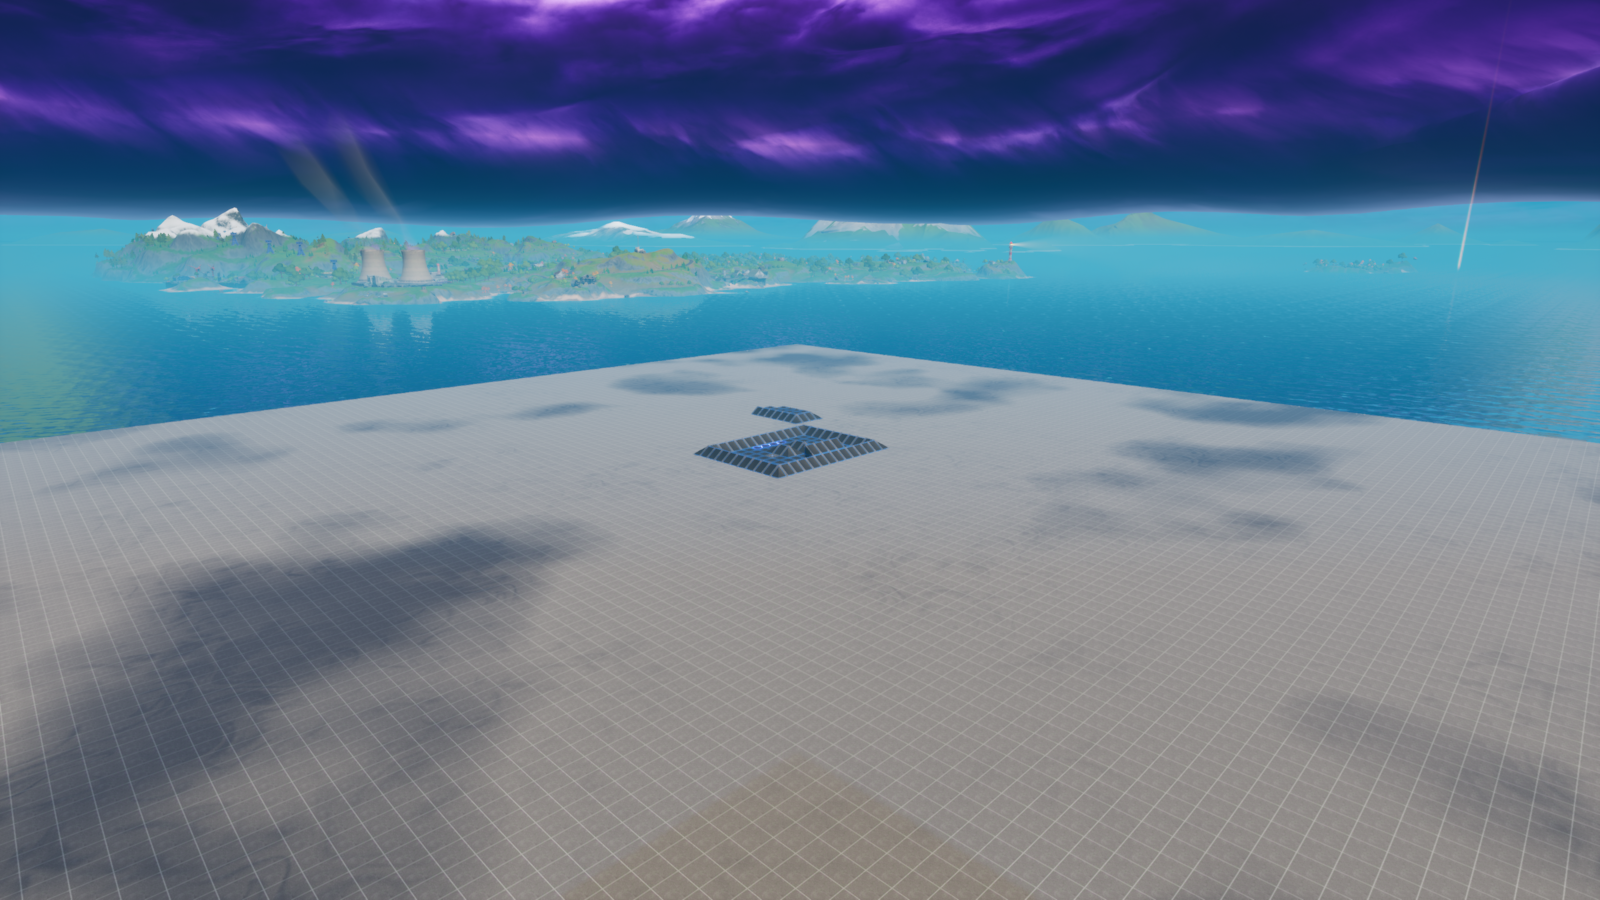 DonnySC's 1v1 map with control panel 6113-4034-3571 by donnysc